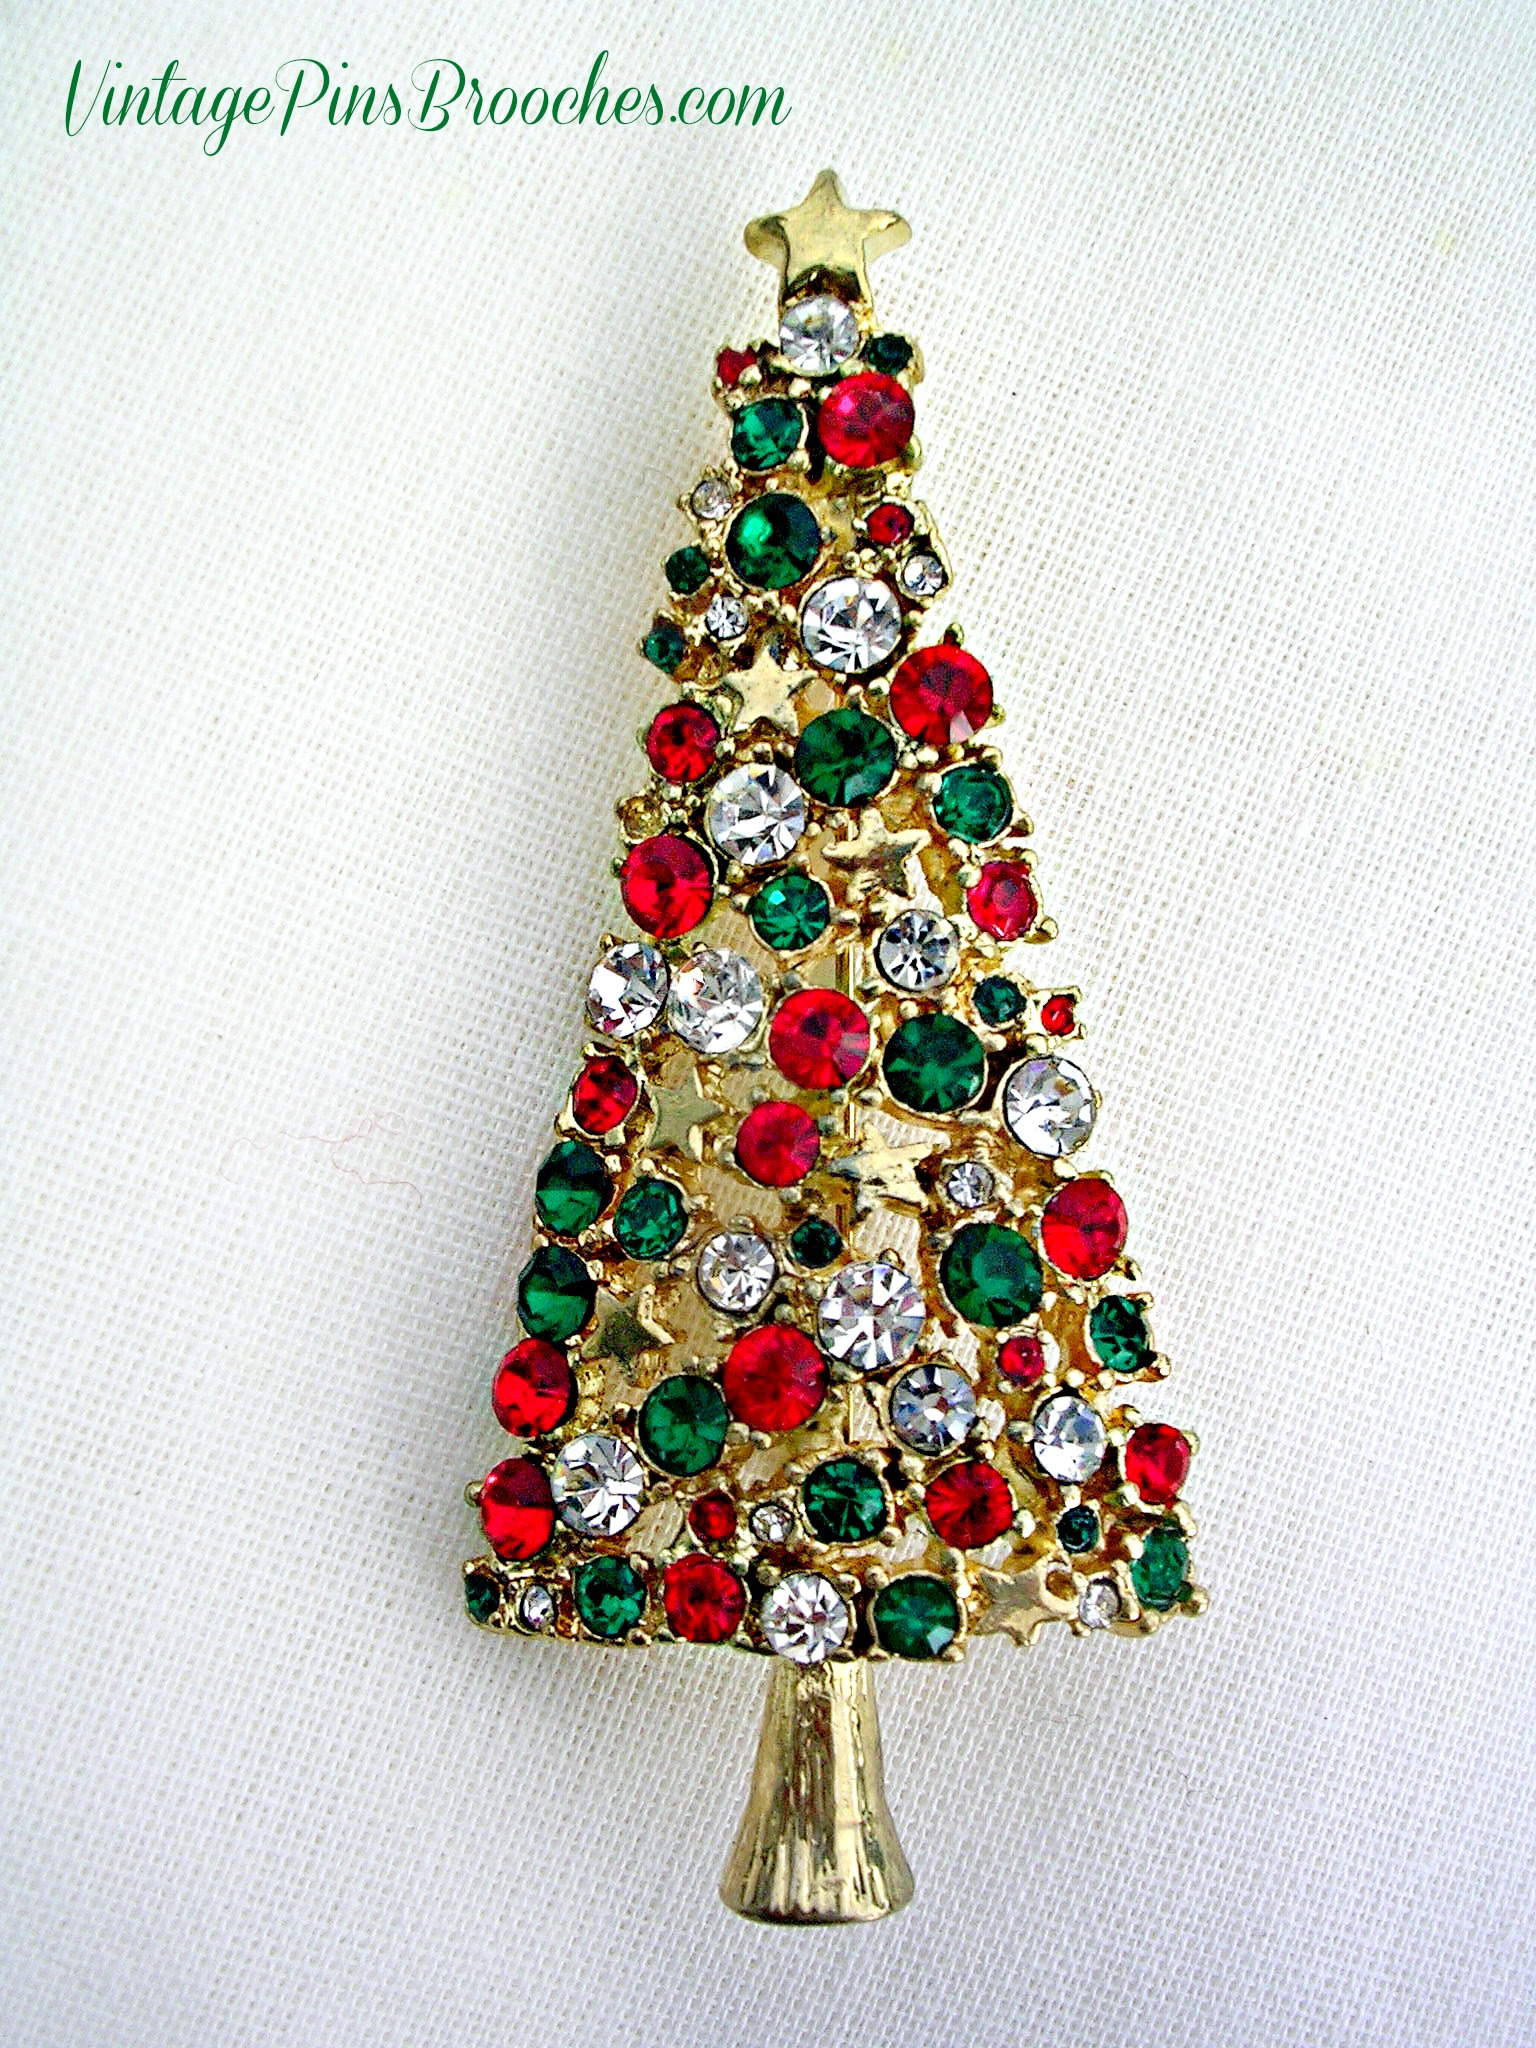 c961d552689 Vintage Gold Plate Diamond Emerald Ruby Tall Christmas Tree Brooch Pin,  Ladies Holiday Jewelry Brooches P76 – Vintage Pins Brooches .